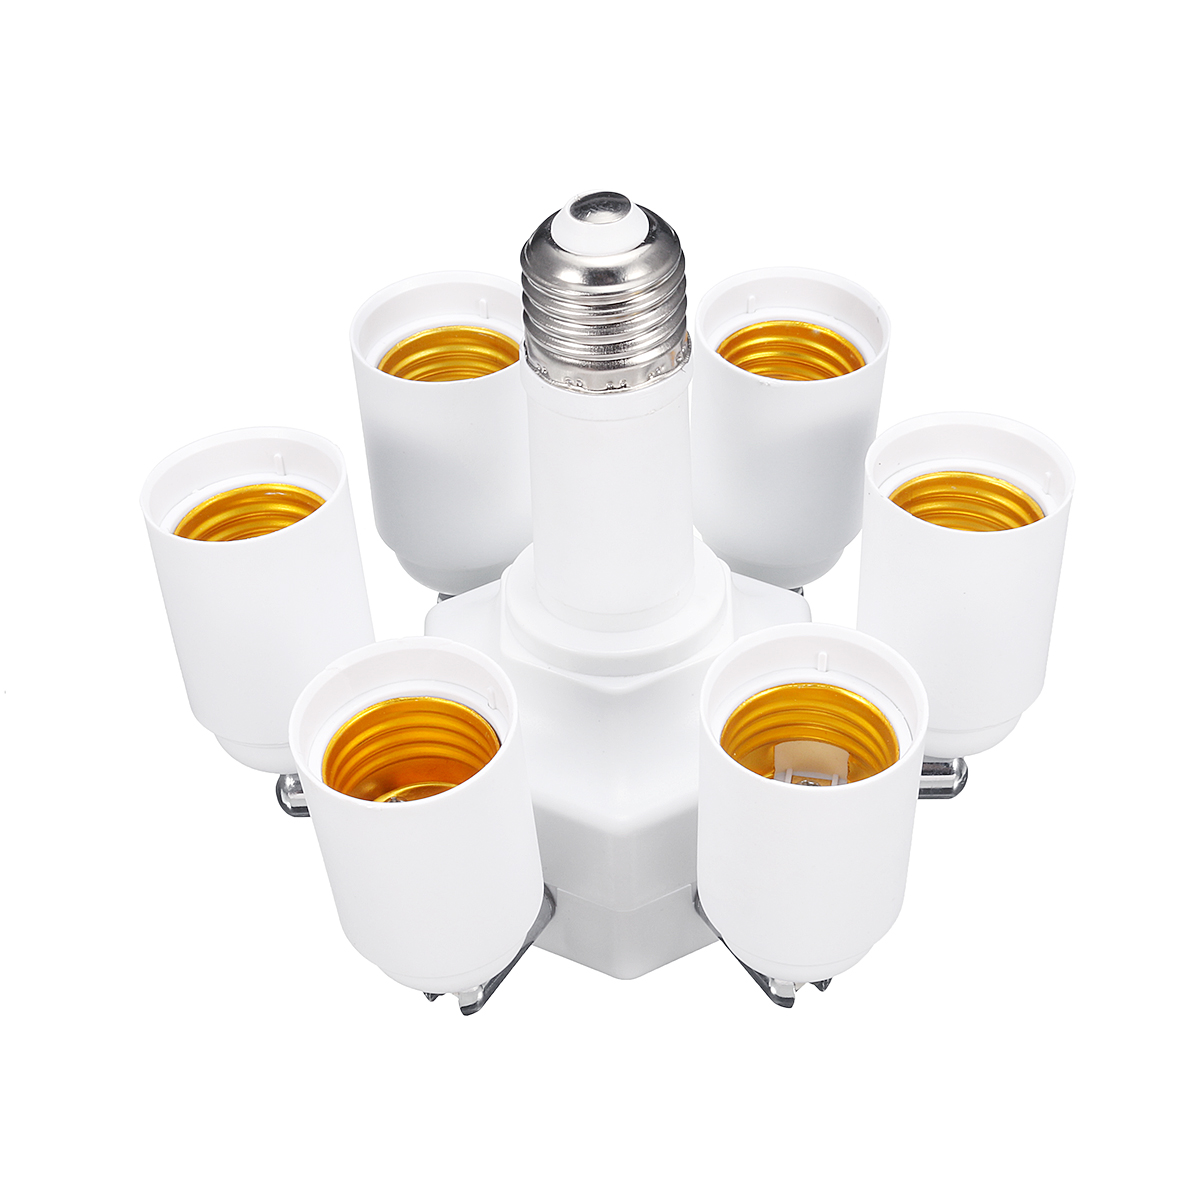 3 In 1 6 In 1 Adjustable E27 LED Light Lamp Bulb Adapter Converter Split Splitter Base Socket